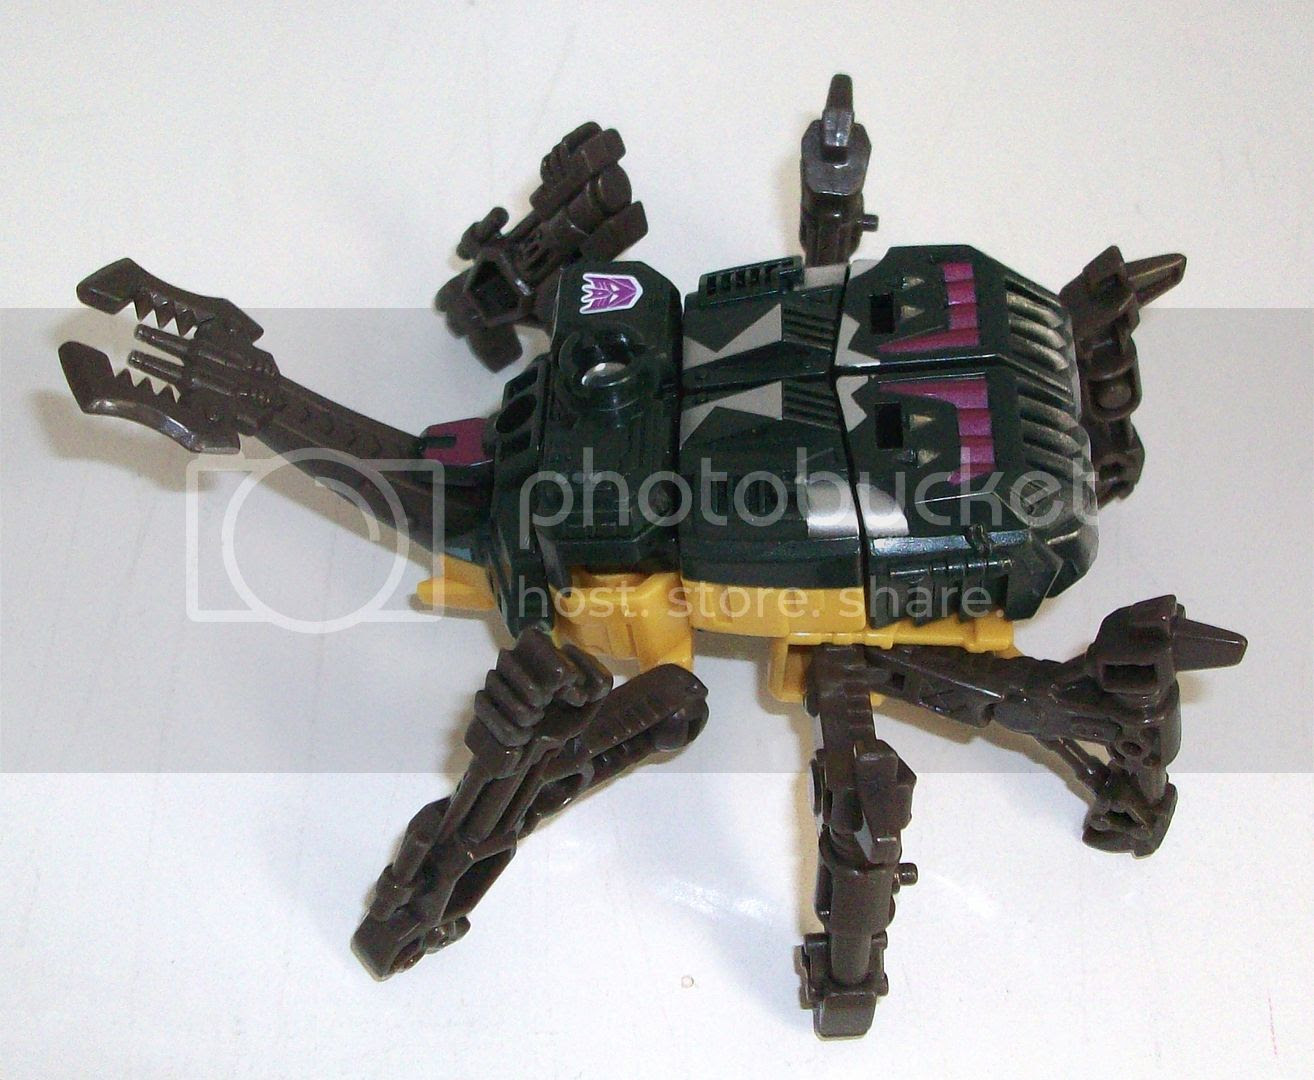 Energon Insecticon photo 100_5038_zpsc252306e.jpg